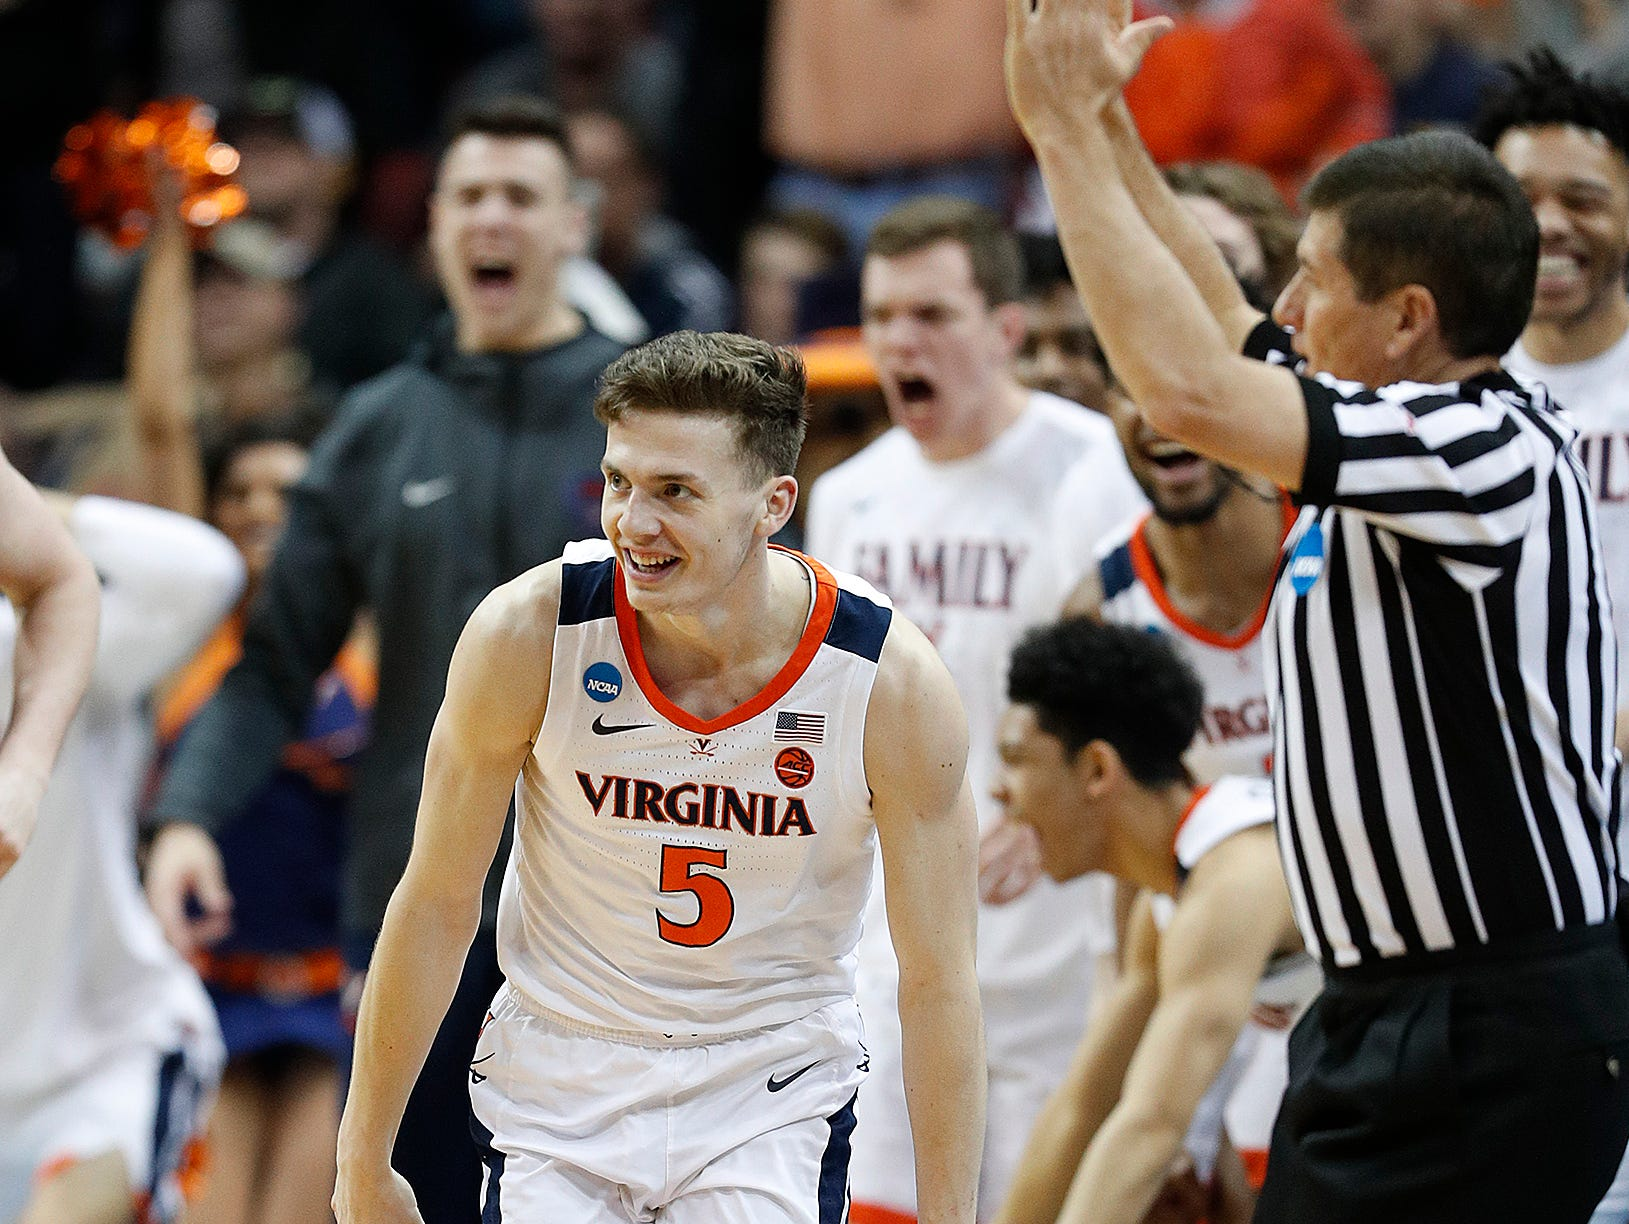 "Virginia Cavaliers guard Kyle Guy (5) celebrates hitting the three point basket in the second half of their NCAA Division I Basketball Championship ""Elite 8"" basketball game at the KFC Yum! Center in Louisville, KY., on Saturday, Mar 30, 2019. The Virginia Cavaliers defeated the Purdue Boilermakers 80-75."